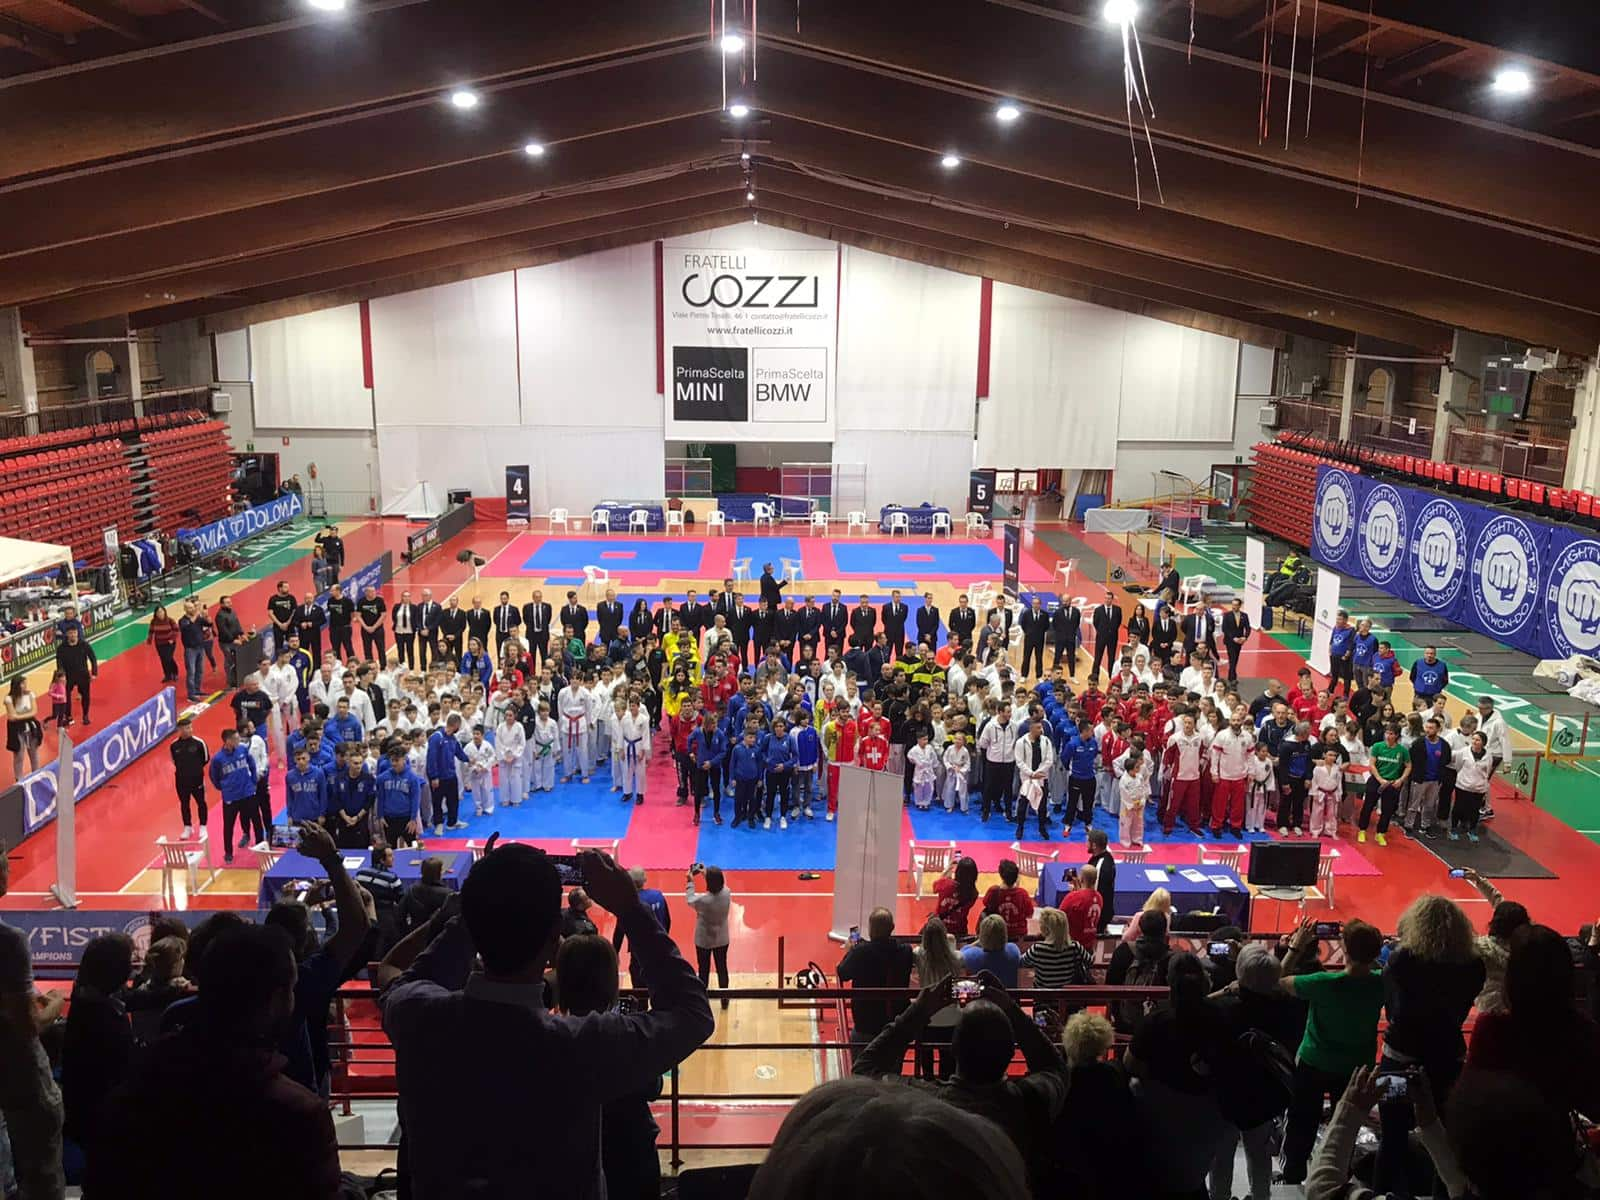 5° MIGHTYFIST ITALIAN OPEN <br>TAEKWON-DO ITF <br>LEGNANO (MI), 30/11/2019